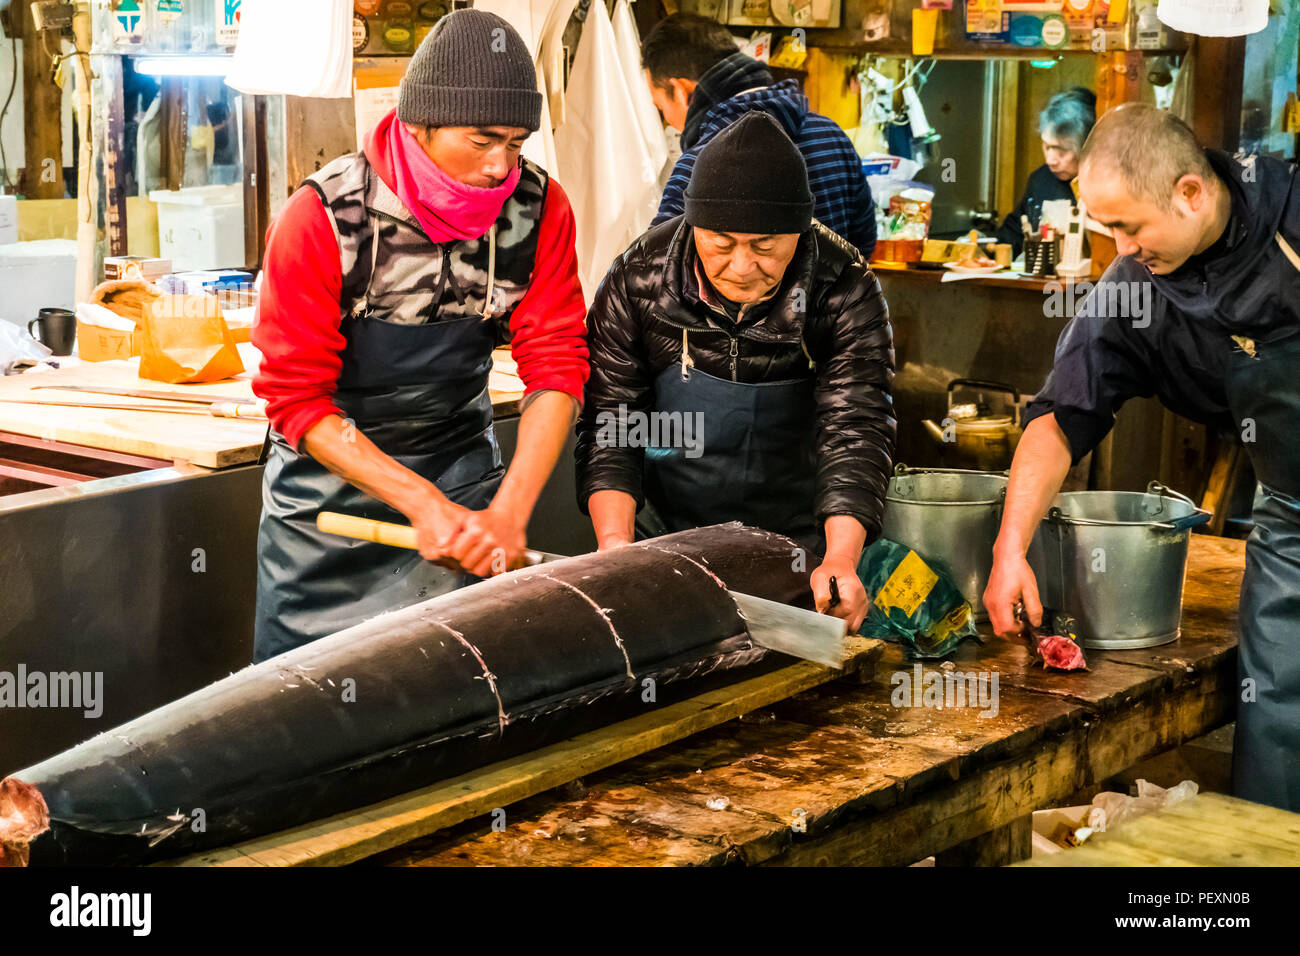 Tsukiji-Fischmarkt in Tokio, Japan Stockbild